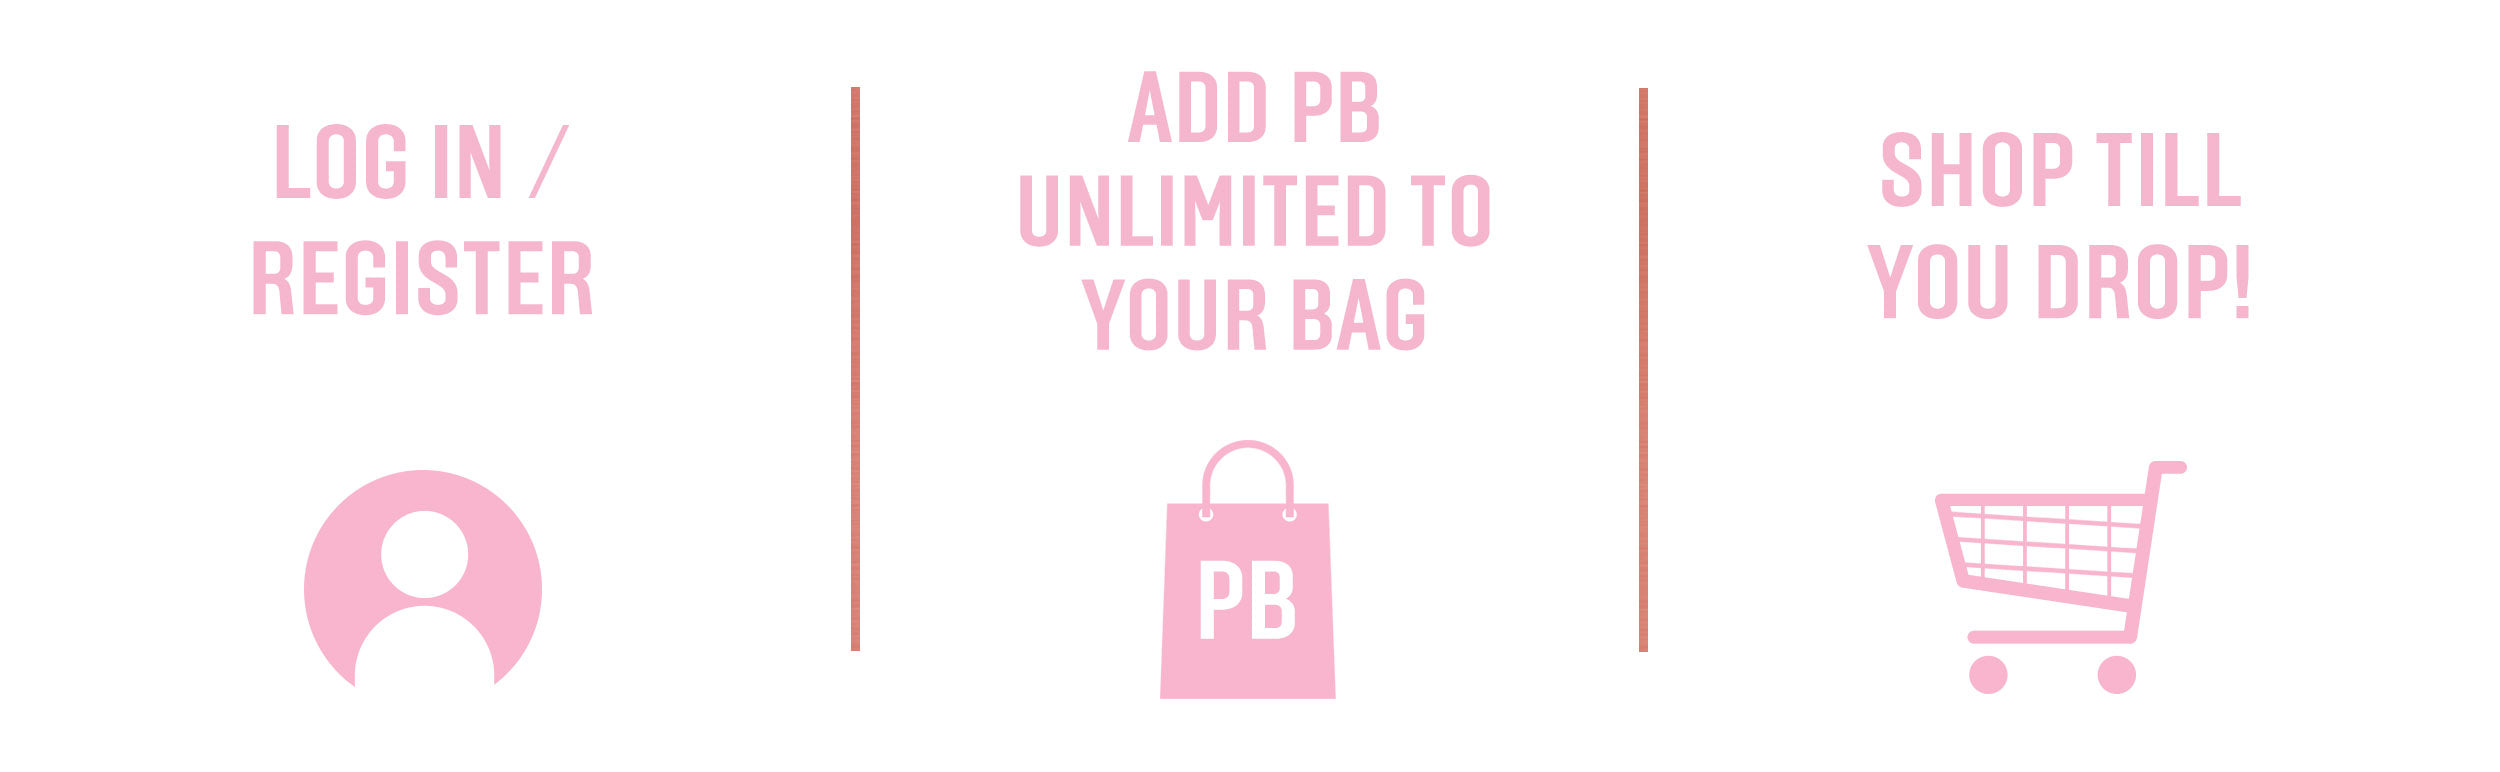 Login/Register > Add PB Unlimited to your bag > Shop till you drop!